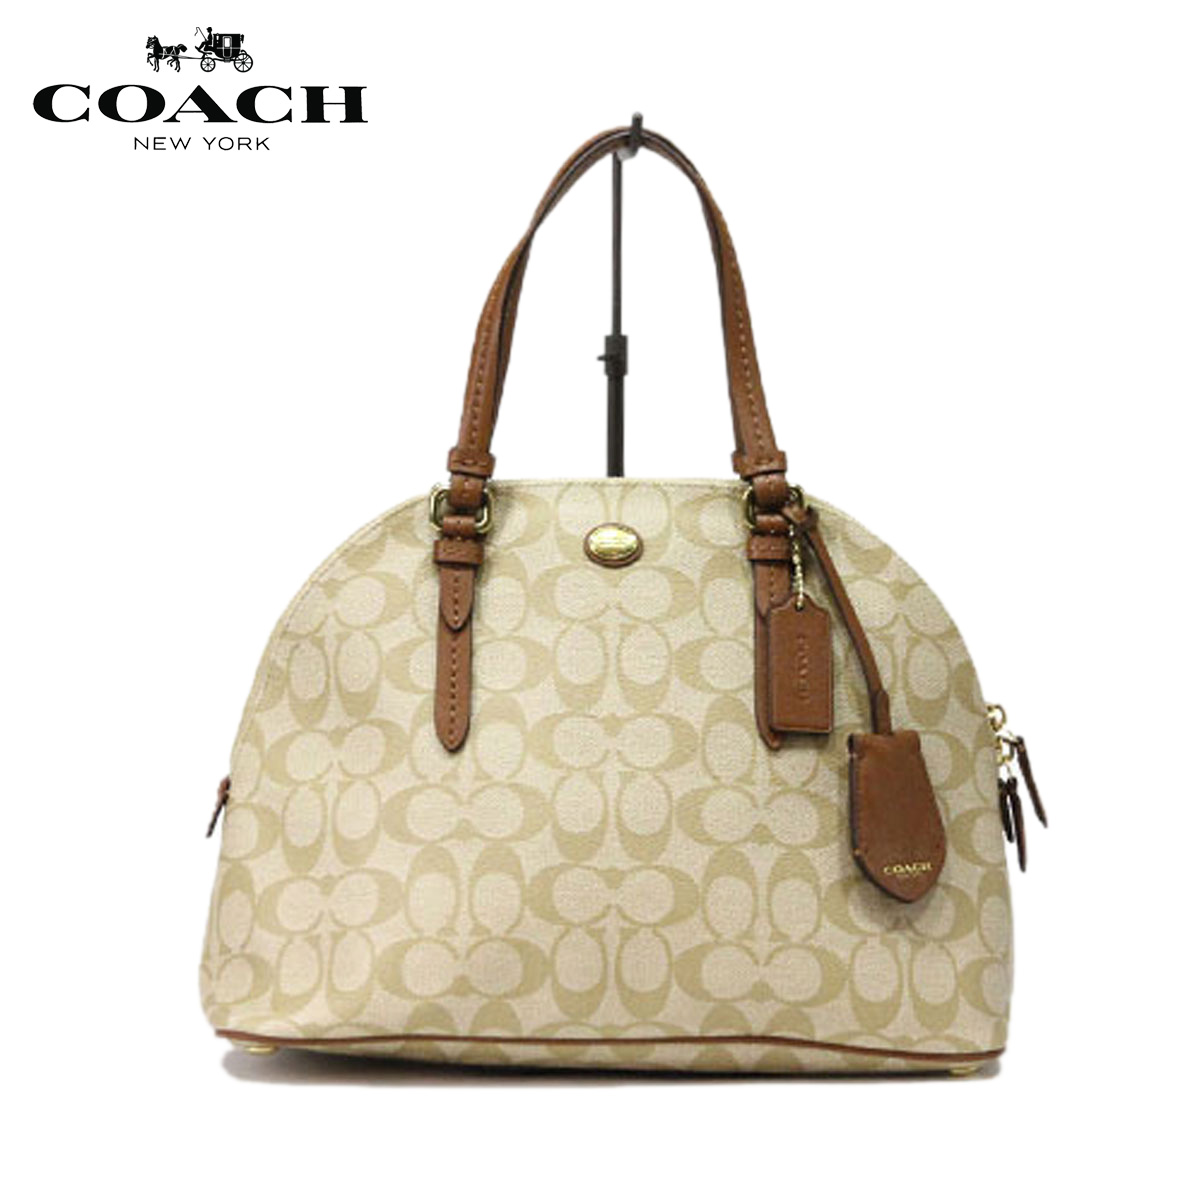 e8e52fd0616 Rakuten Ichiba shop MIXON  Coach COACH genuine ladies bag SATCHEL F24606  B4CZ9   Rakuten Global Market